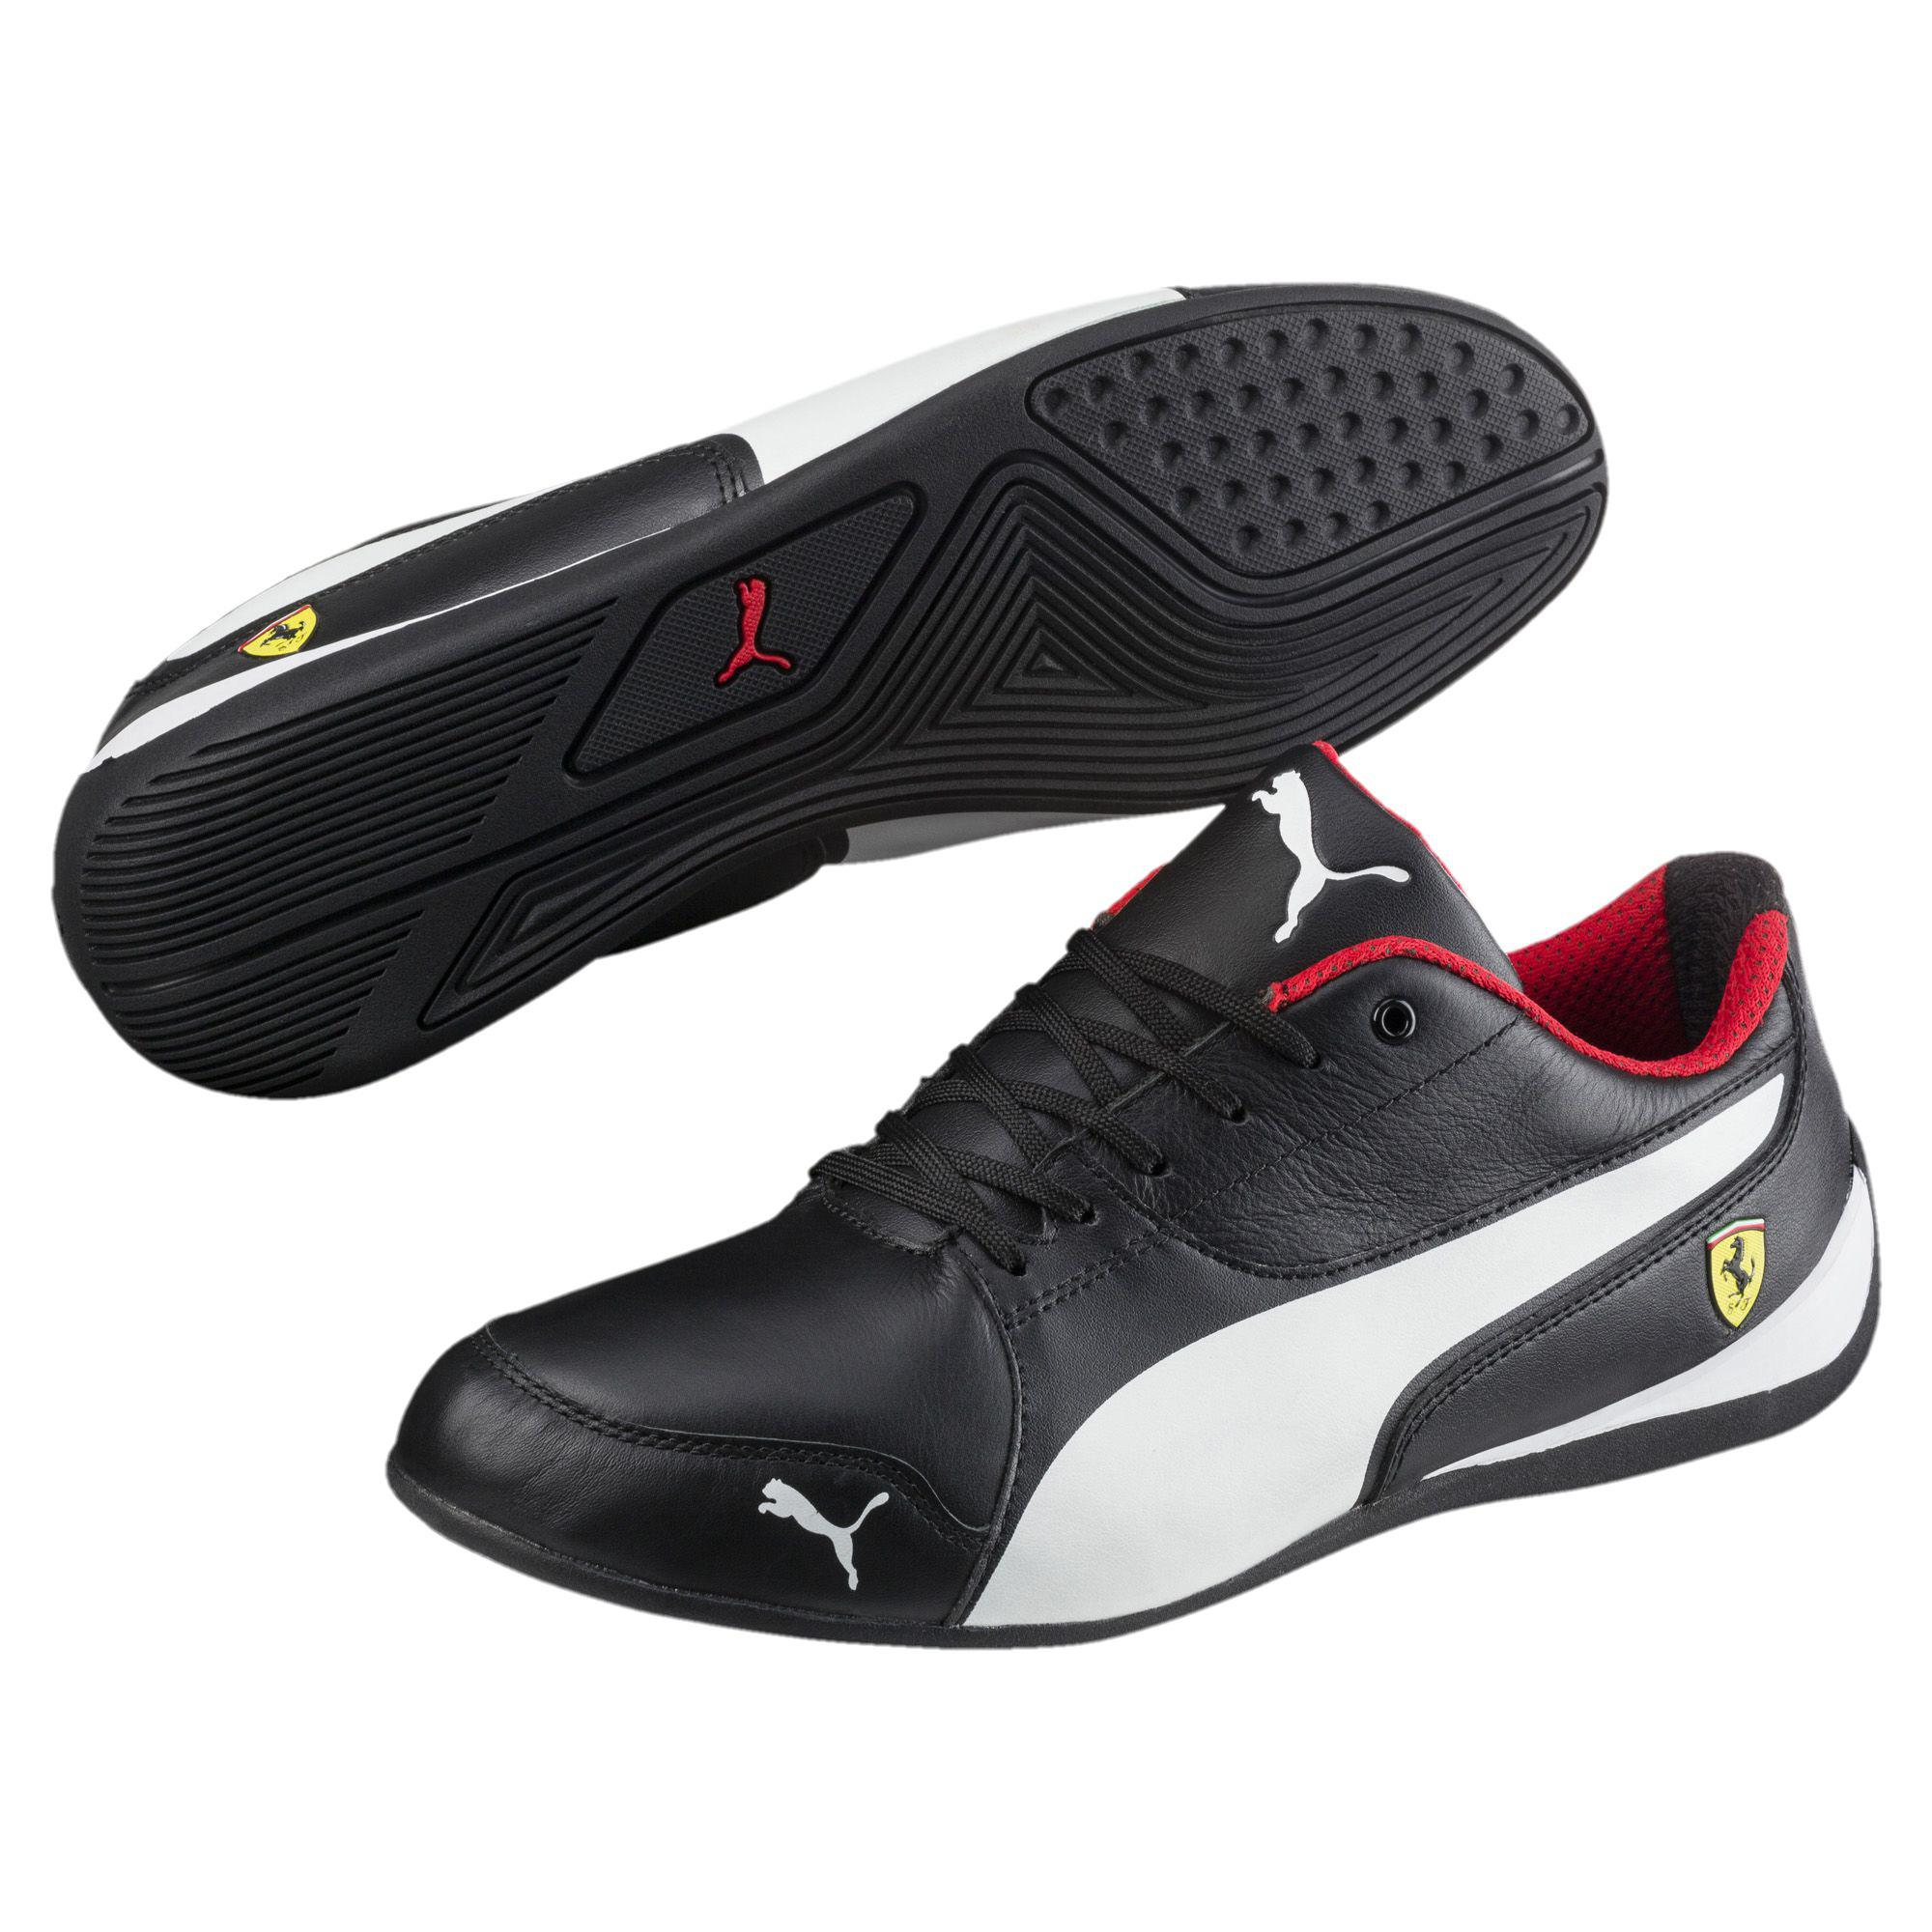 for rosso men gallery lyst belt puma shoes s in red corsa co ferrari sneakers roma mens